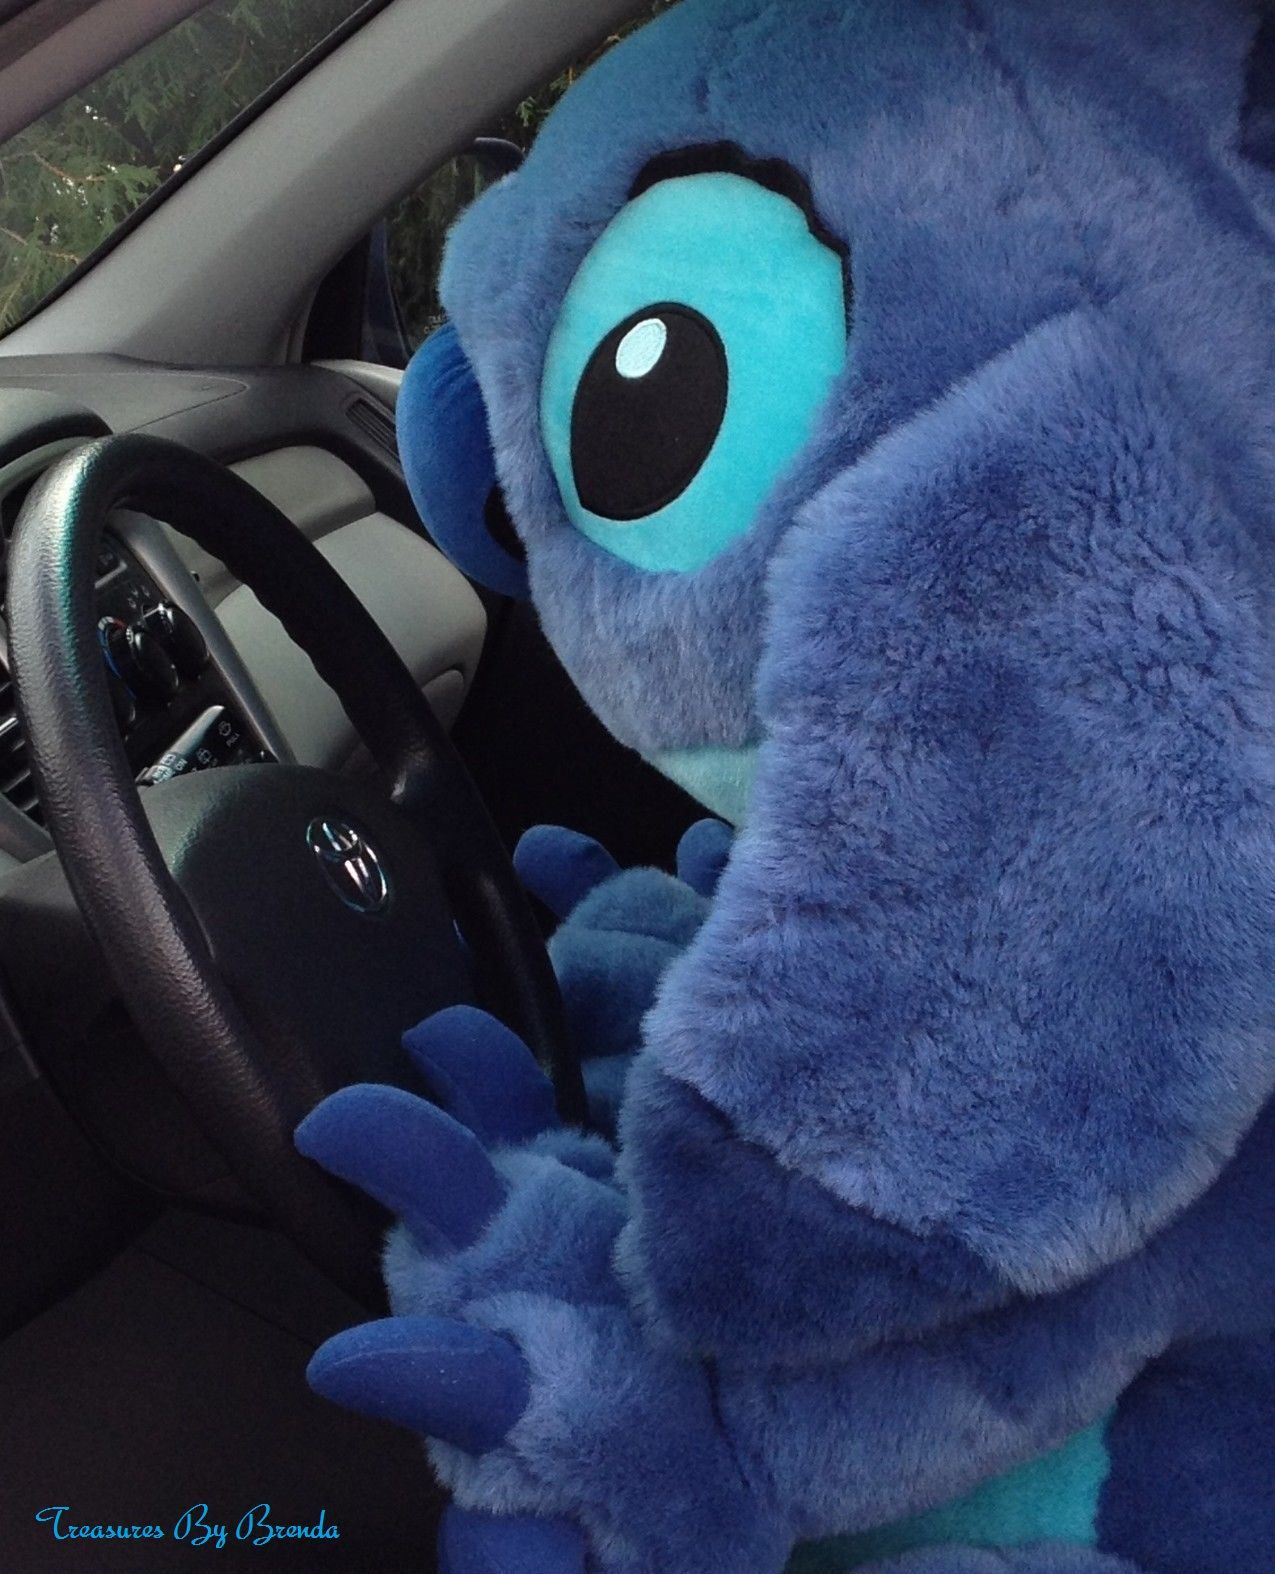 Flounder Stuffed Animal, Stitch Is Up To His Usual Antics This Huge Plush Stitch From Lilo Stitch Made Off With My Car This Mornin Lilo And Stitch Lilo And Stitch Movie Disney Gifts